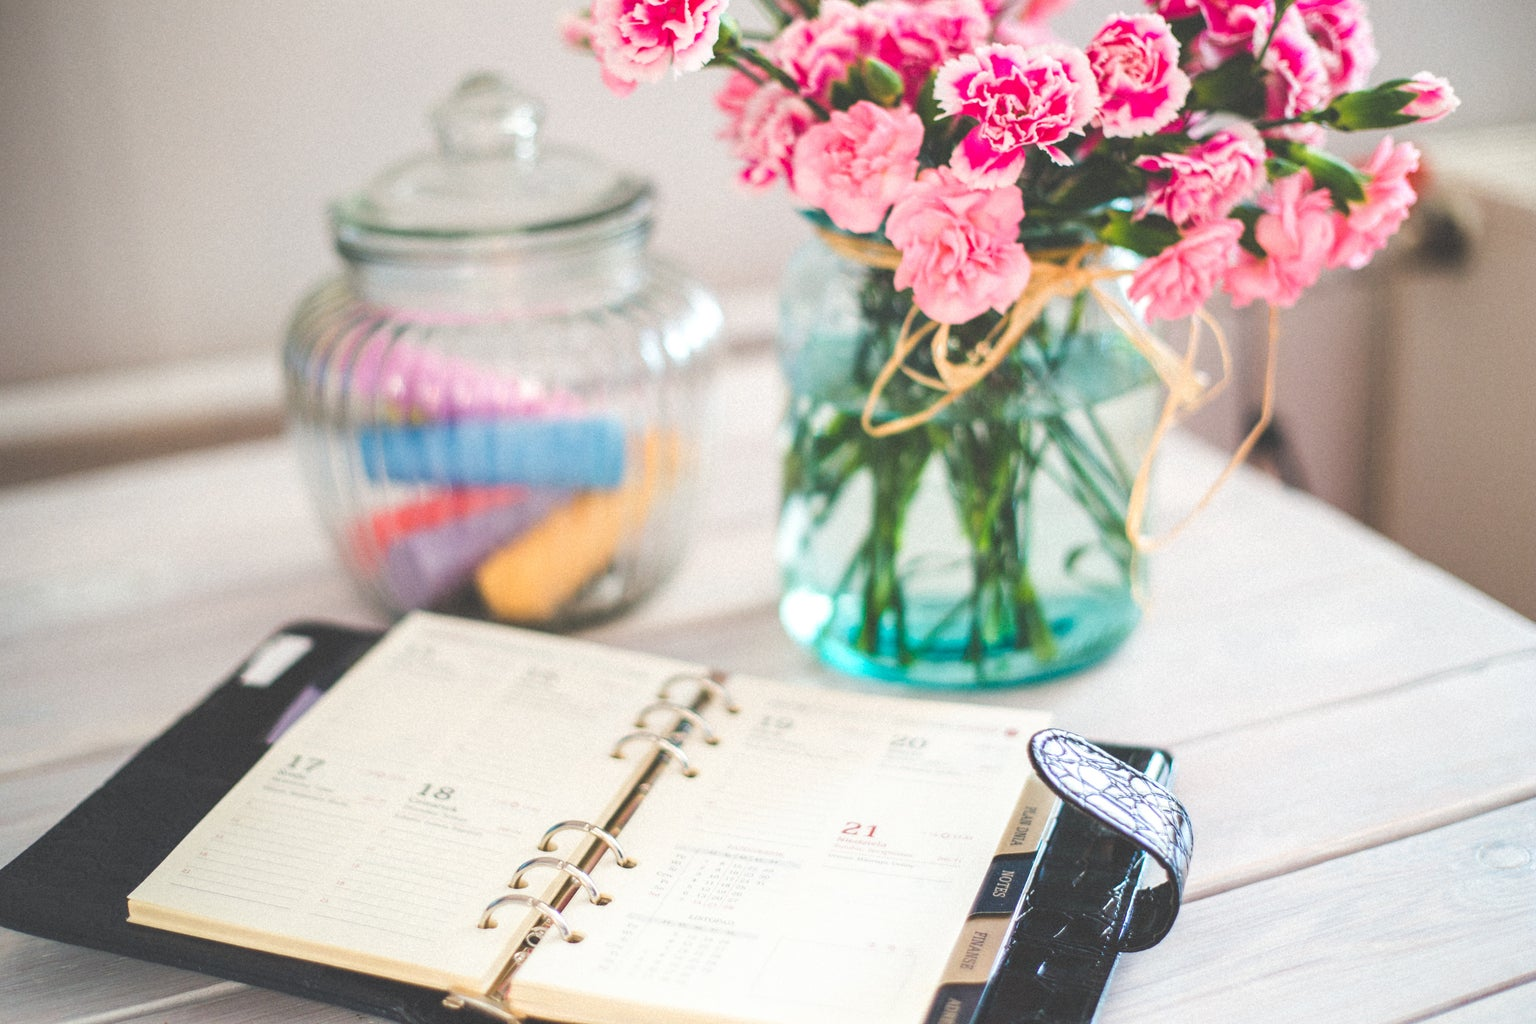 planner and pink flowers on desk